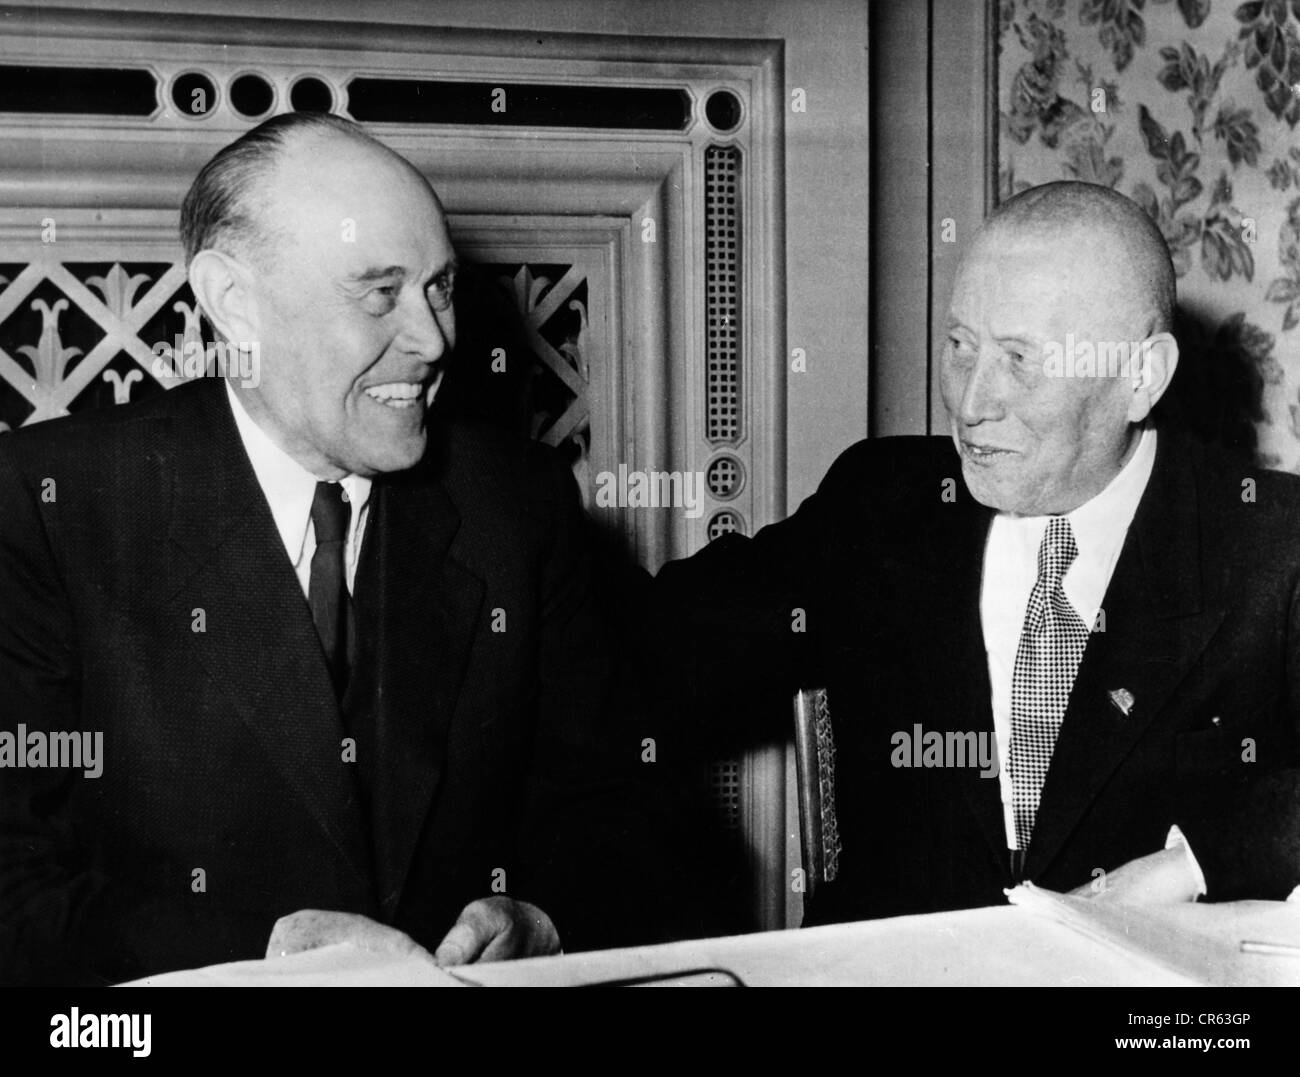 Kesselring, Albert  30.11.1885 - 16.7.1960, German general, president of Stahlhelm, with Dr. Lehmann, Gau Leader - Stock Image